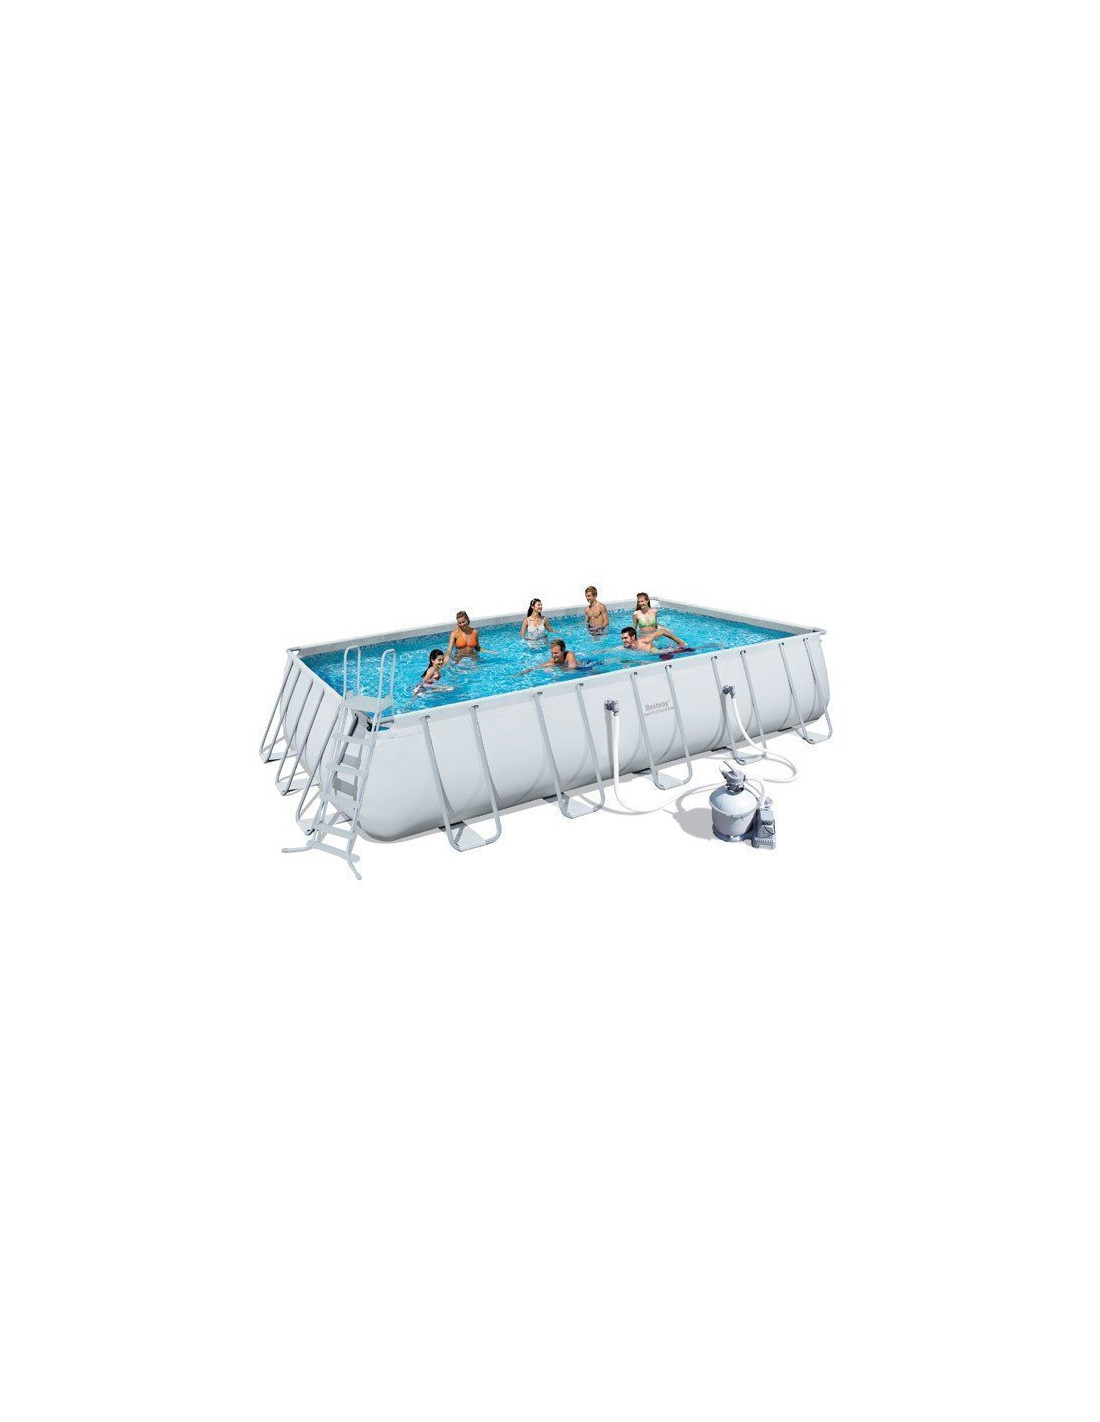 Piscine rectangulaire tubulaire bestway avec filtre sable for Pompe pour piscine bestway